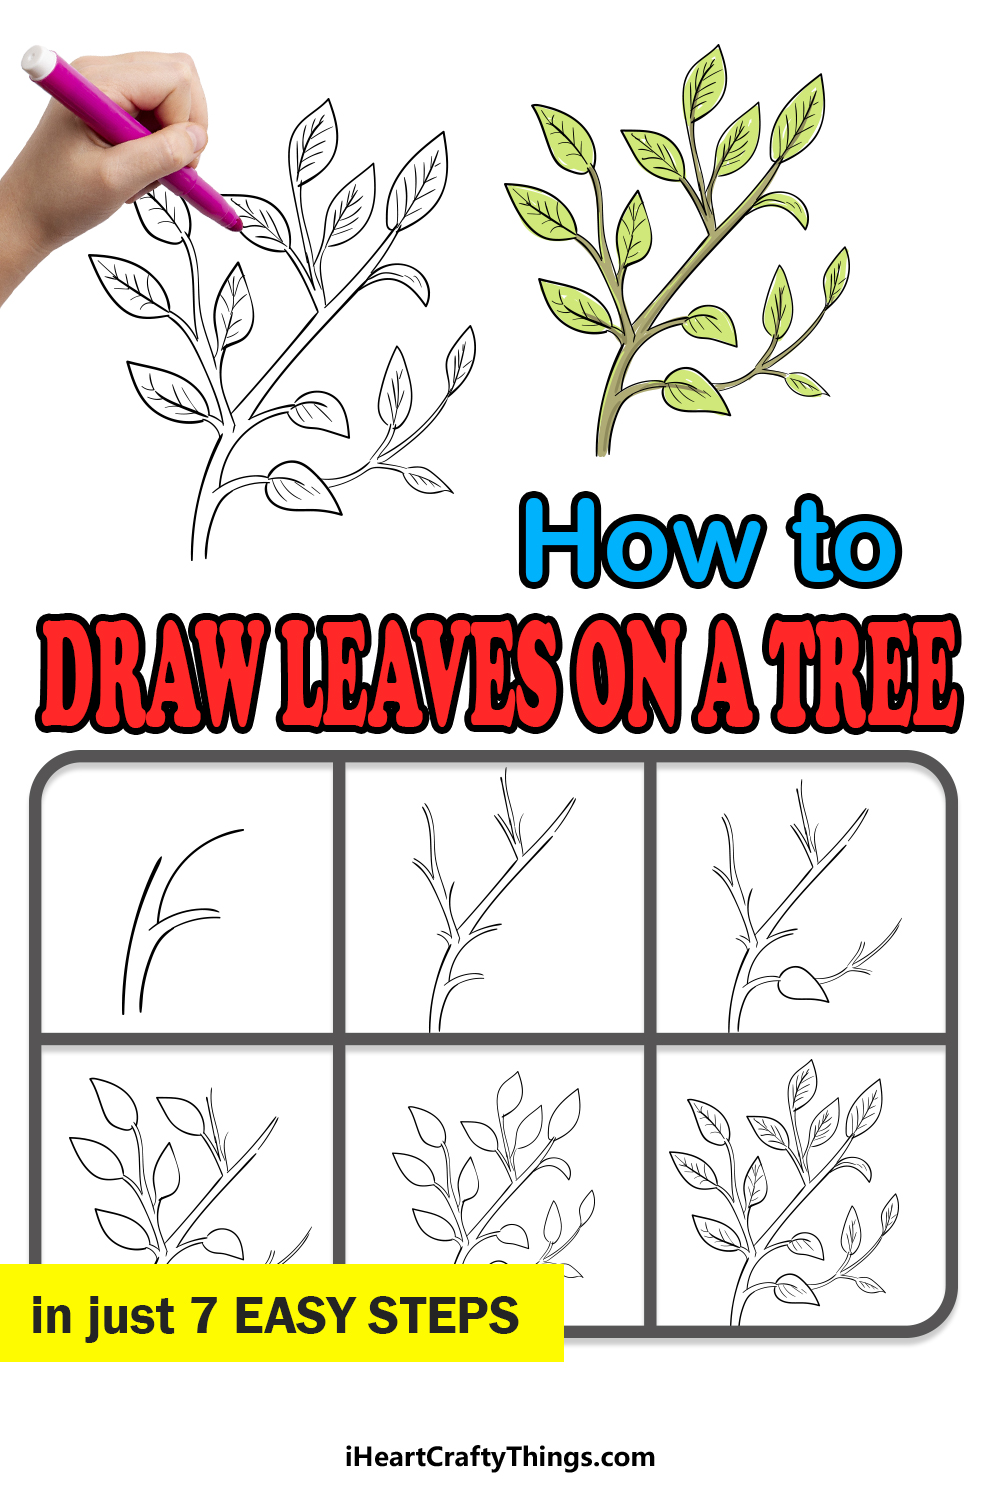 how to draw leaves on a tree in 7 easy steps